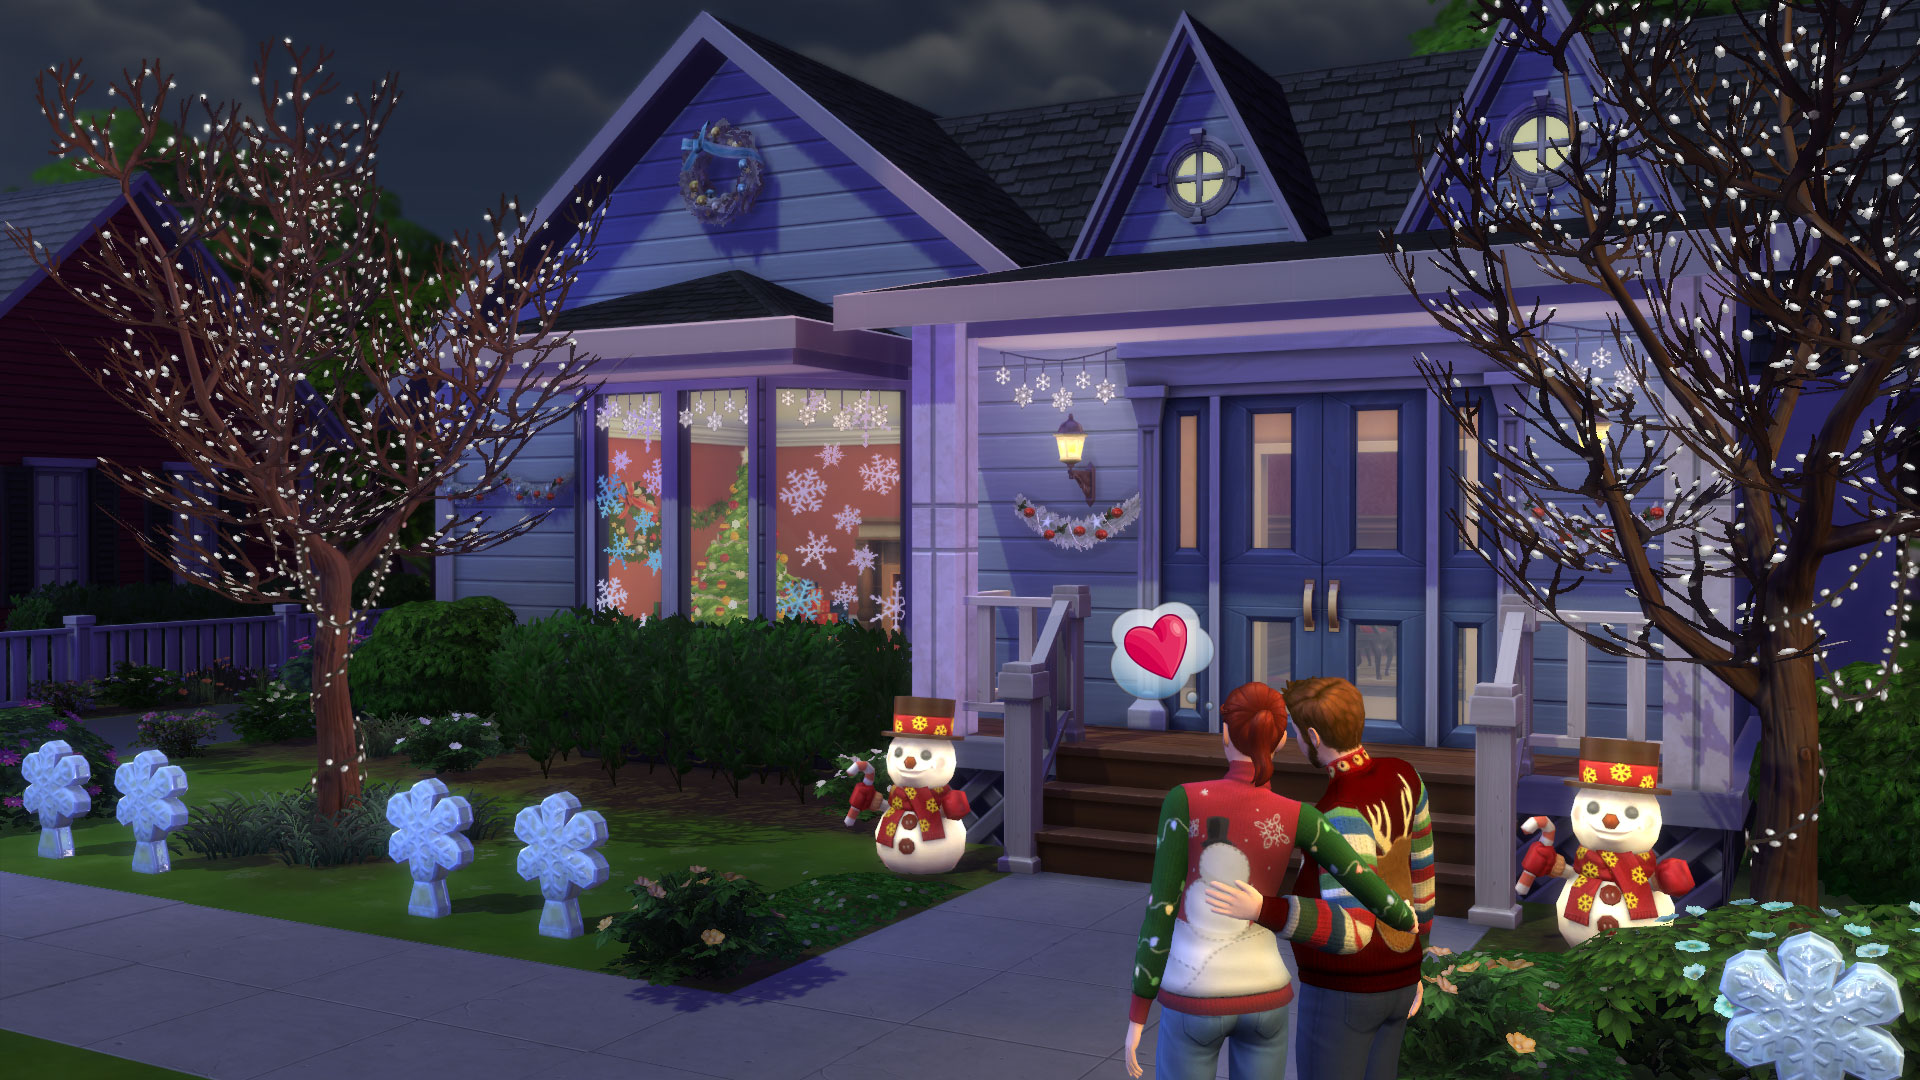 TS4_638_HOLIDAY_PACK_01_001a